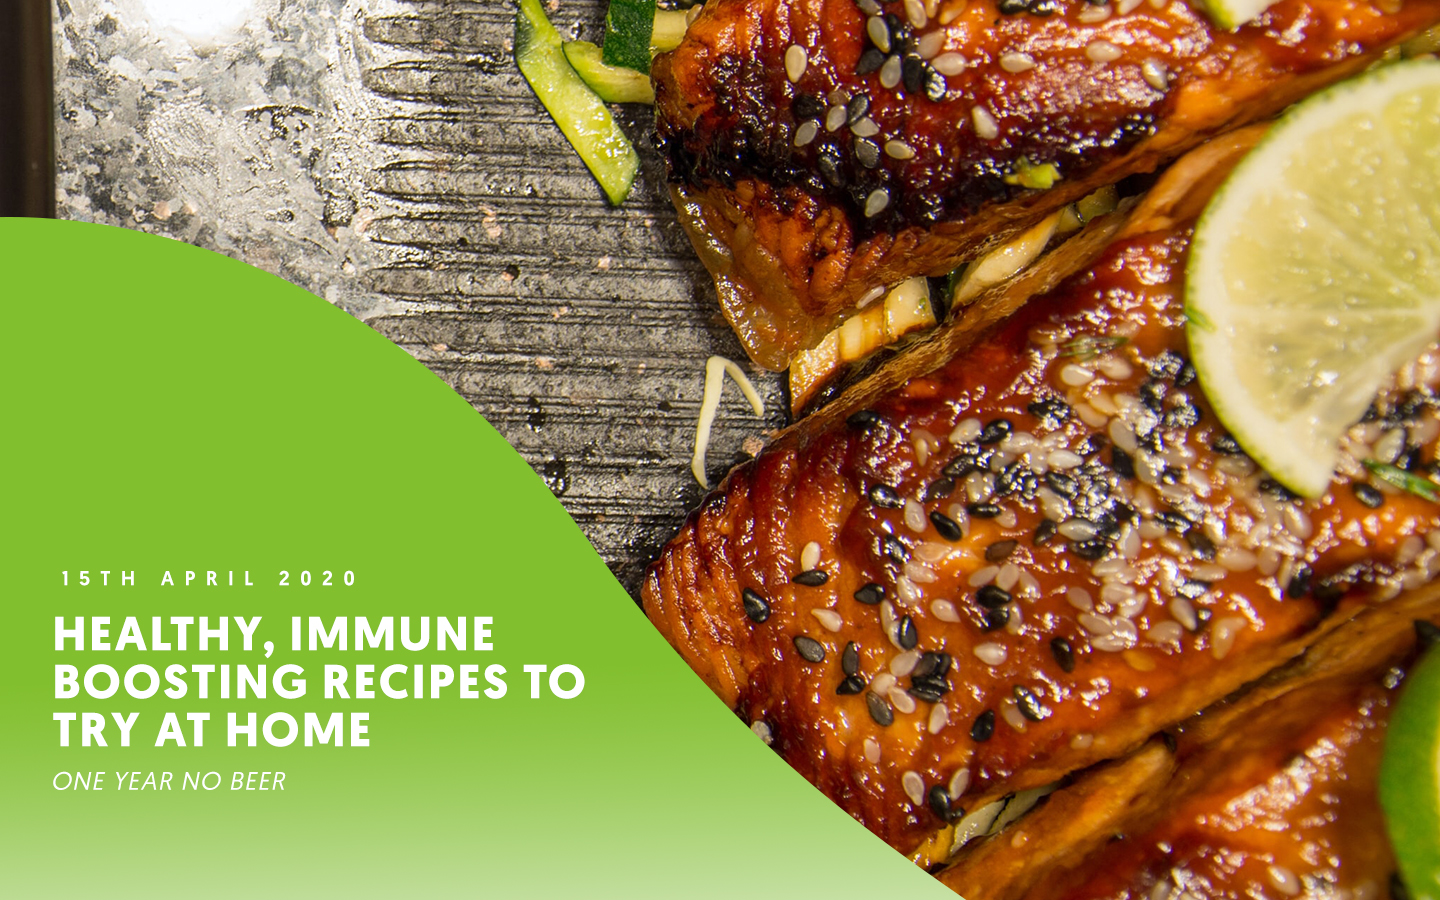 Healthy, immune boosting recipes to try at home